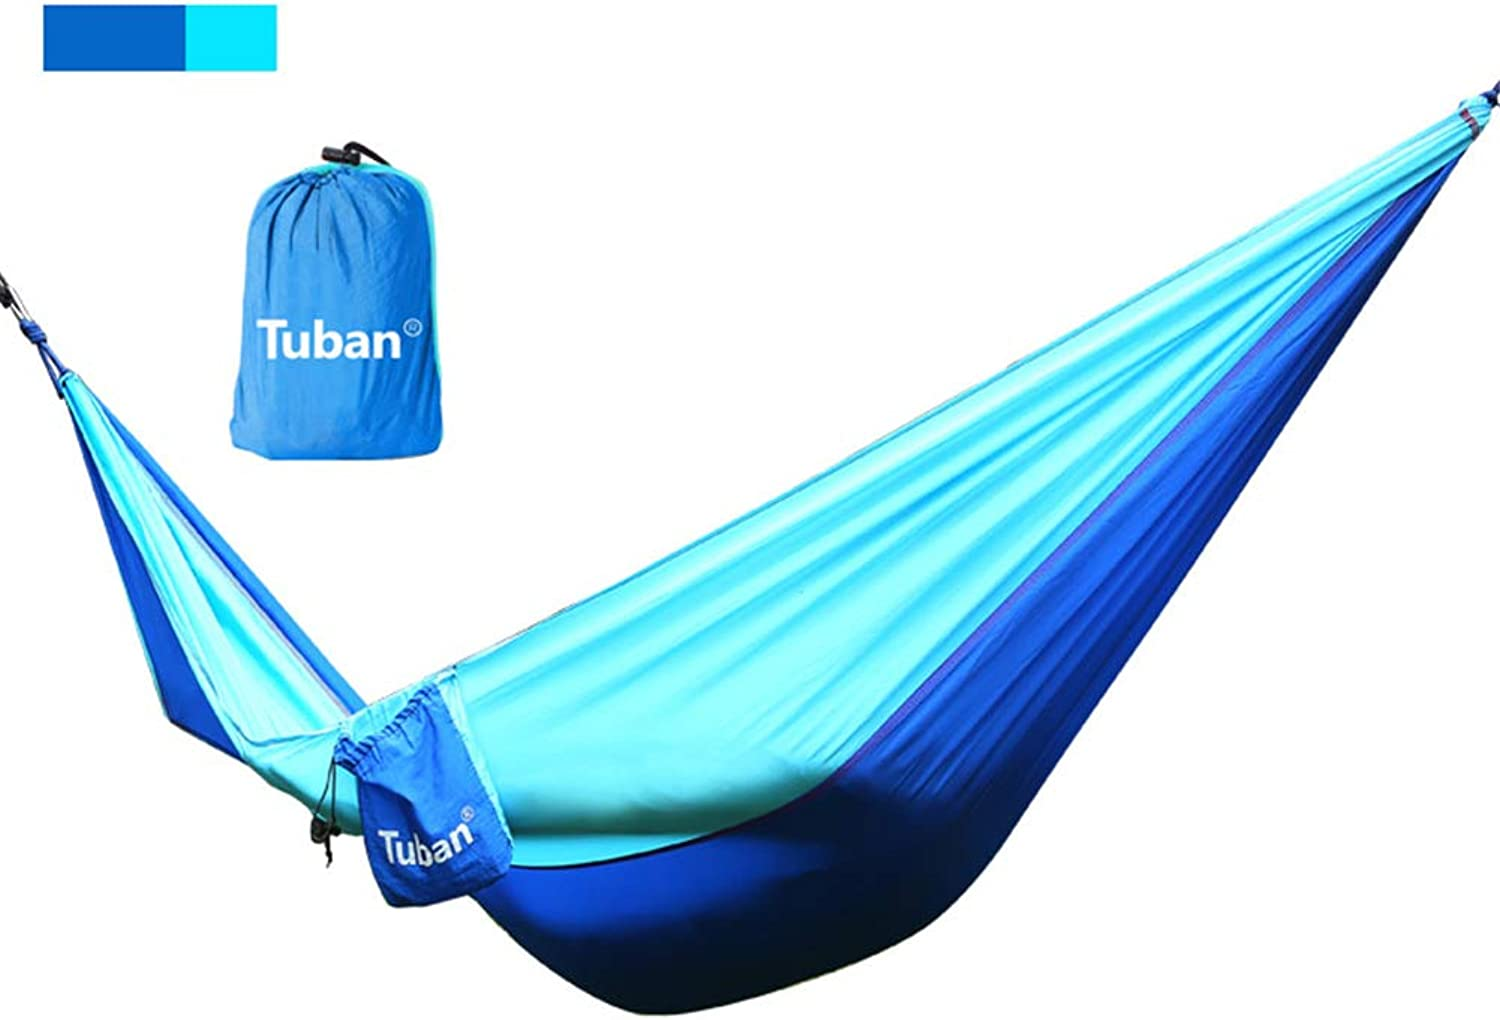 Outdoor Double Hammock,Parachute Cloth 300kg LoadBearing Student Indoor Dorm Room Bedroom Swing Mountaineering Leisure Camping Hammock color Optional